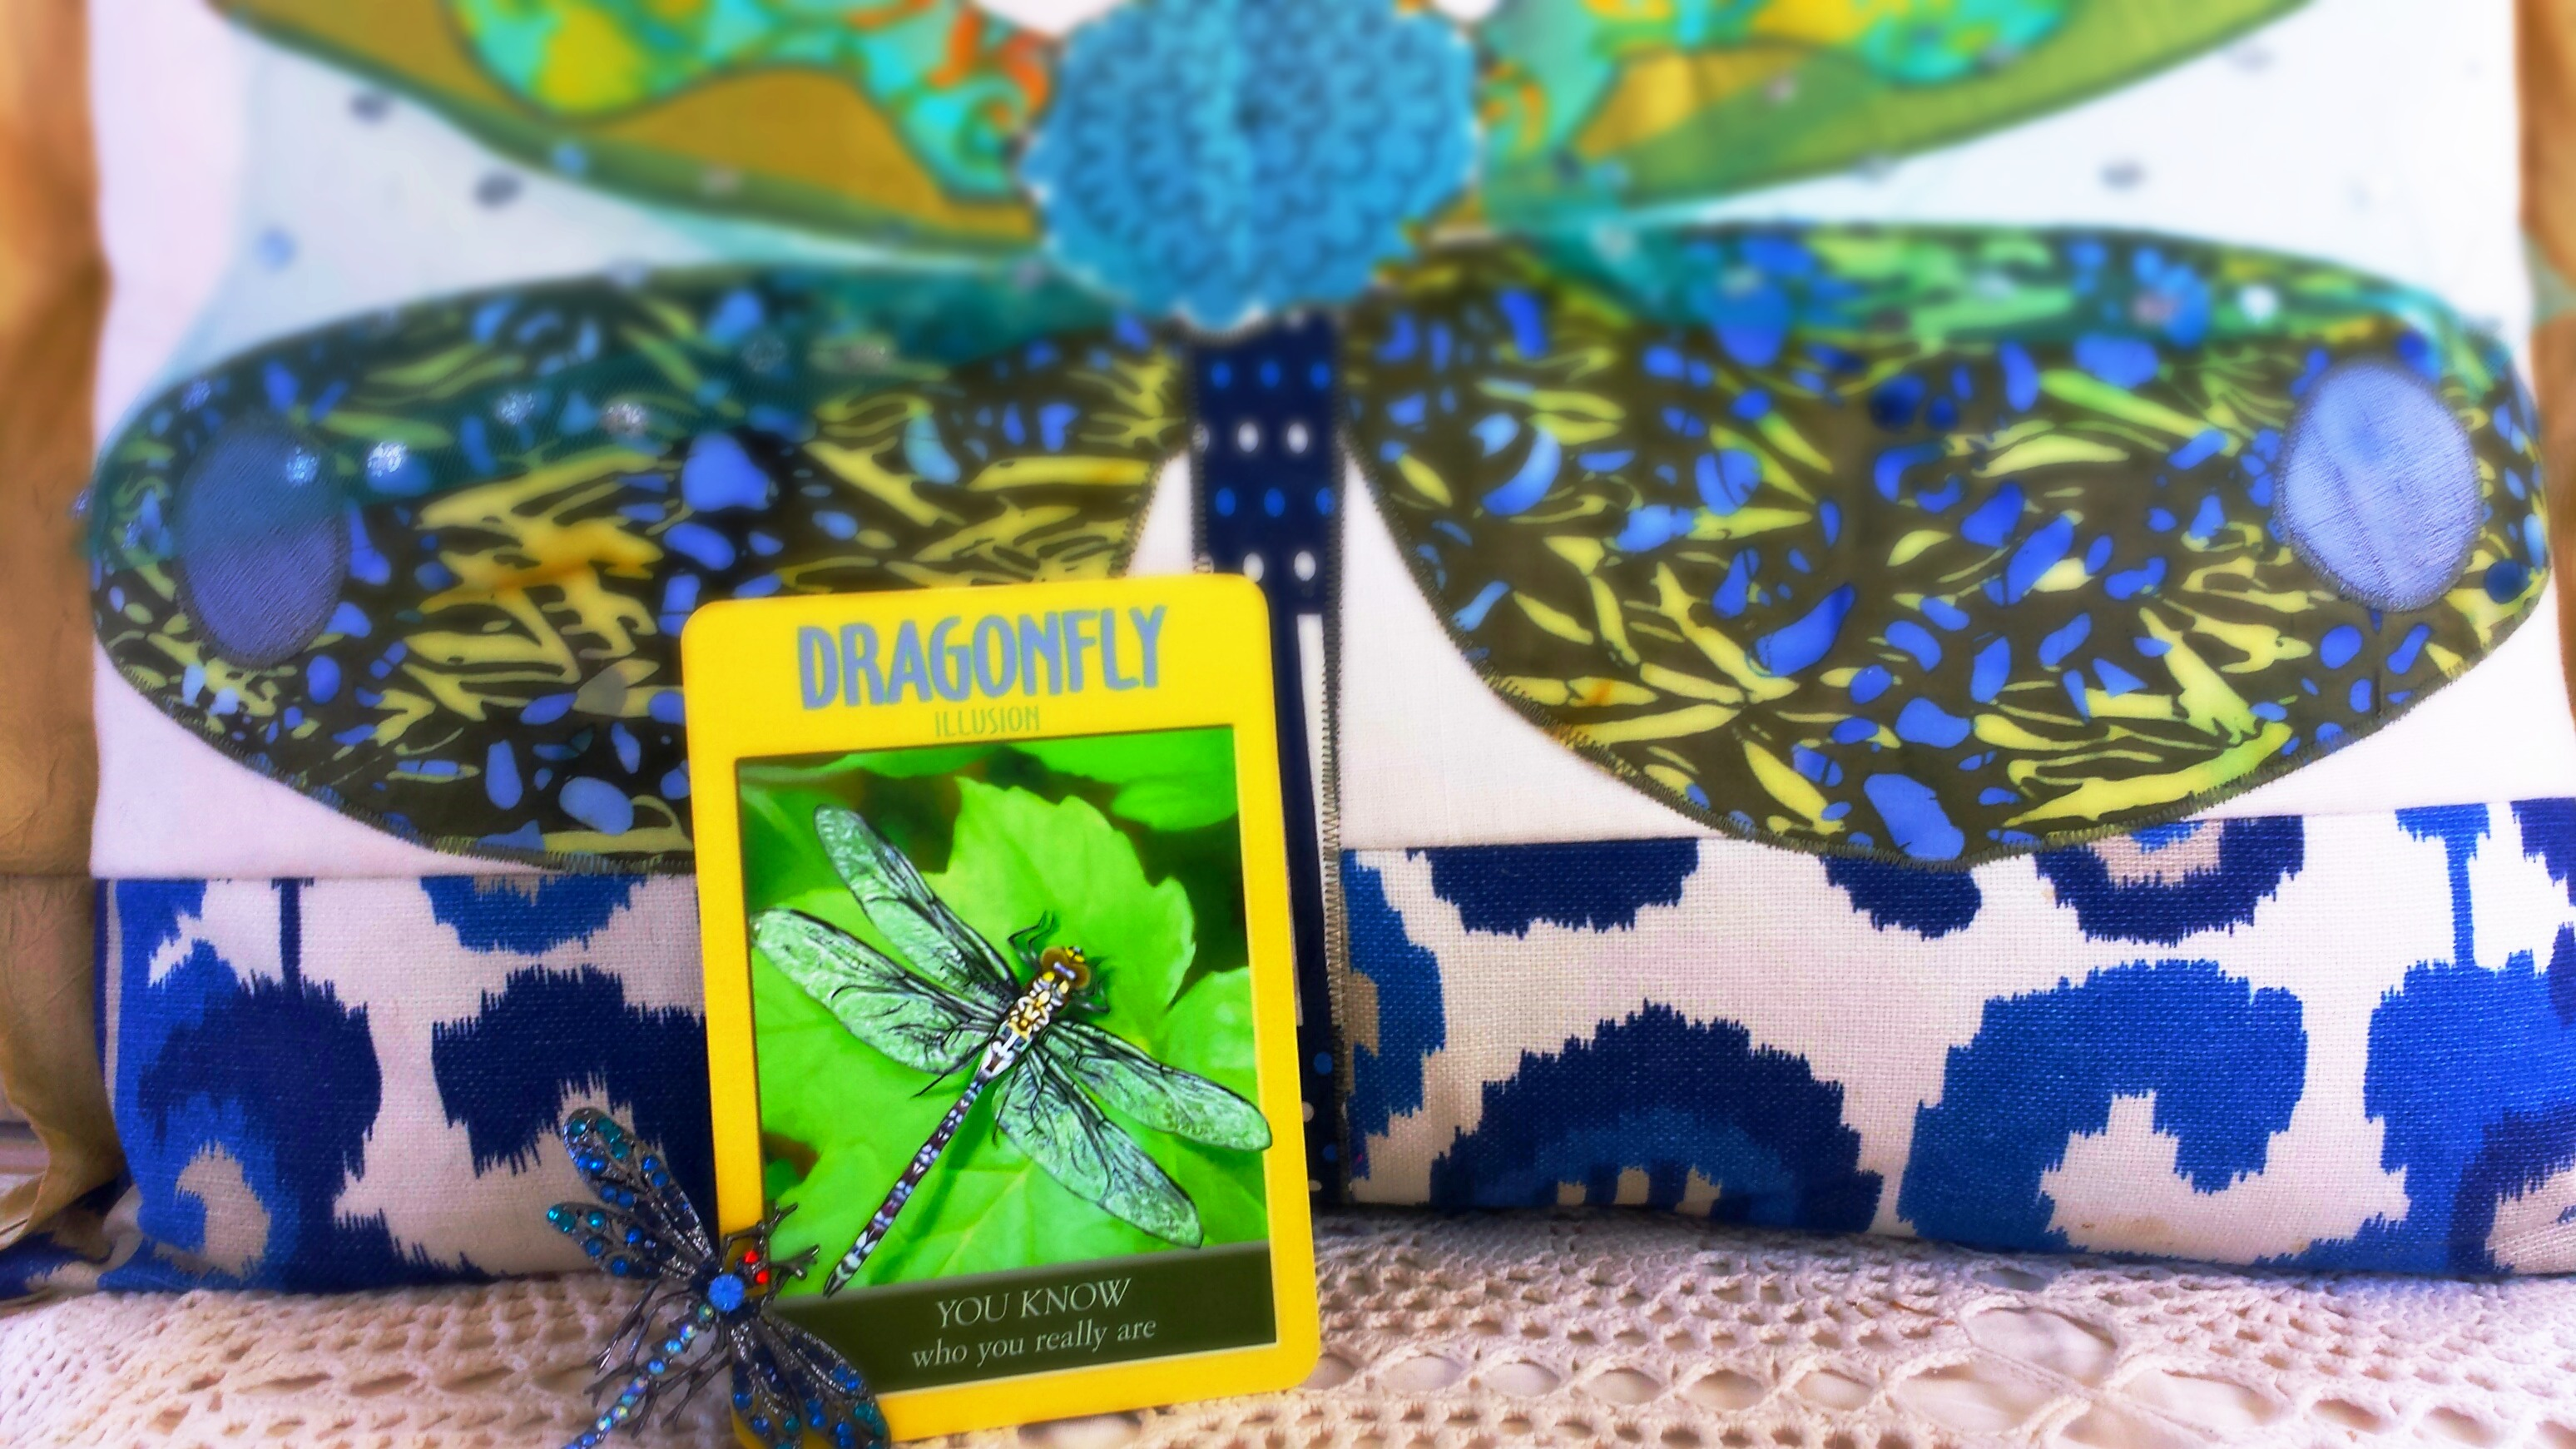 Dragonfly's Important Synchronistic Message